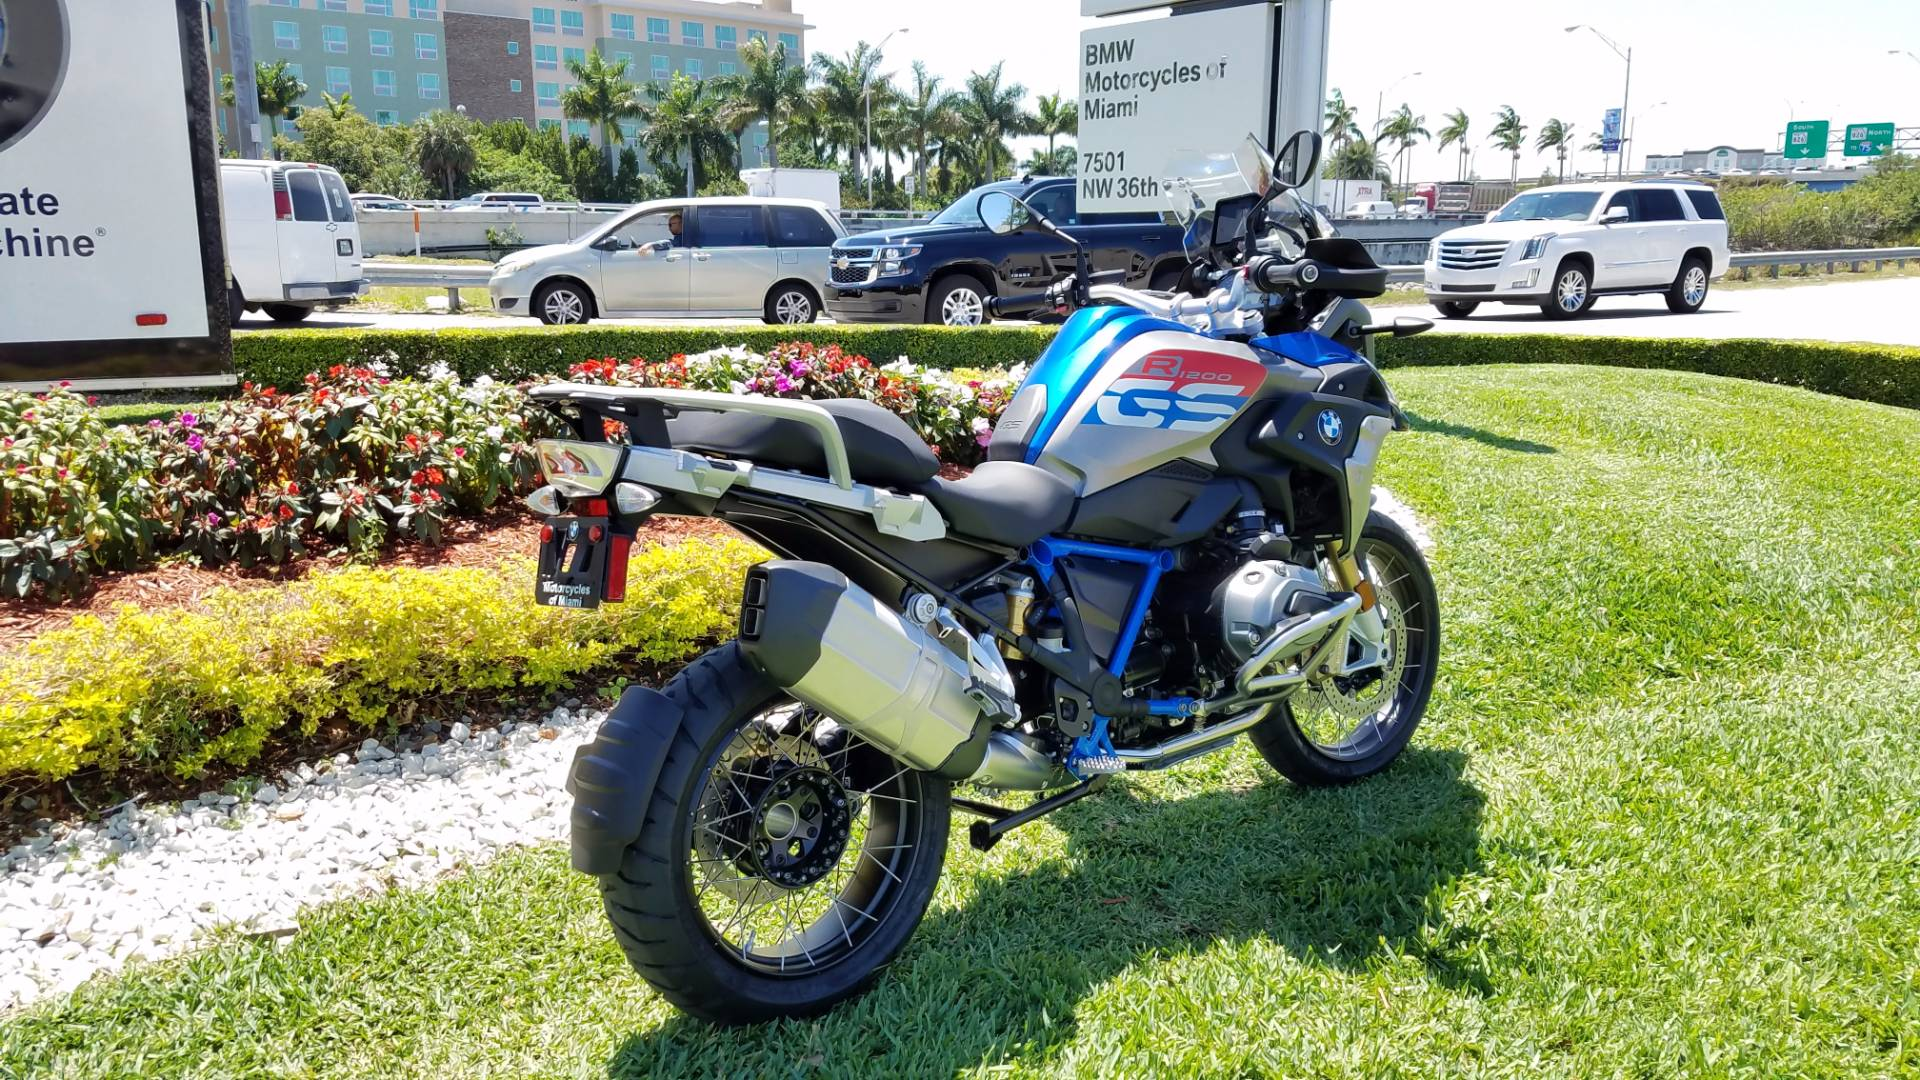 New 2017 BMW R 1200 GS For Sale, BMW R 1200 GS Rally For Sale, BMW Motorcycle R 1200GS, new BMW 1200GS Exclusive, New BMW Motorcycle